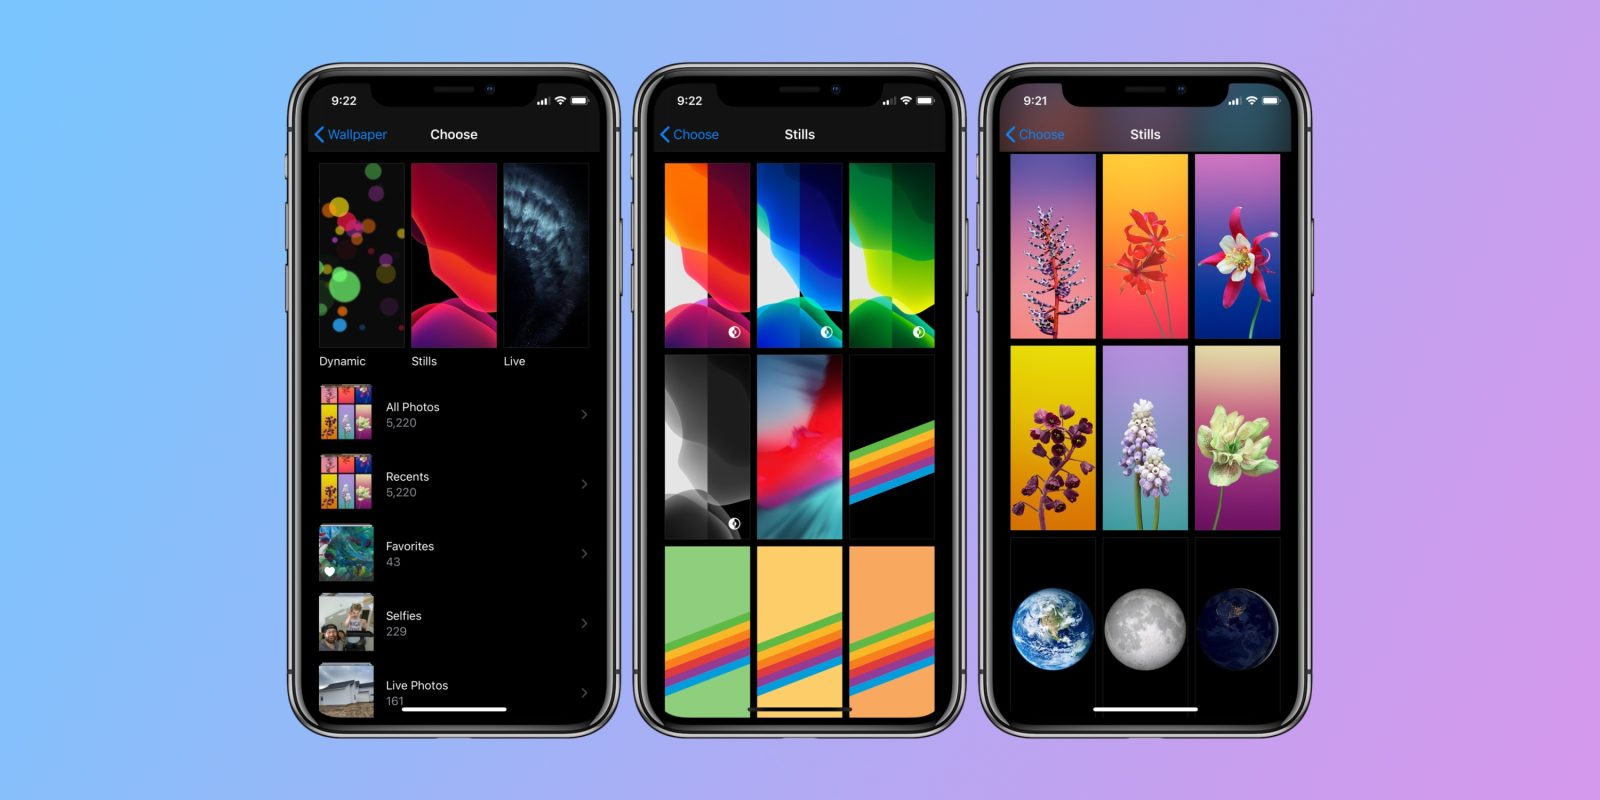 Ios 14 Major Accessibility Features Alipay Apple Pay Wallpaper App Integration More 9to5mac